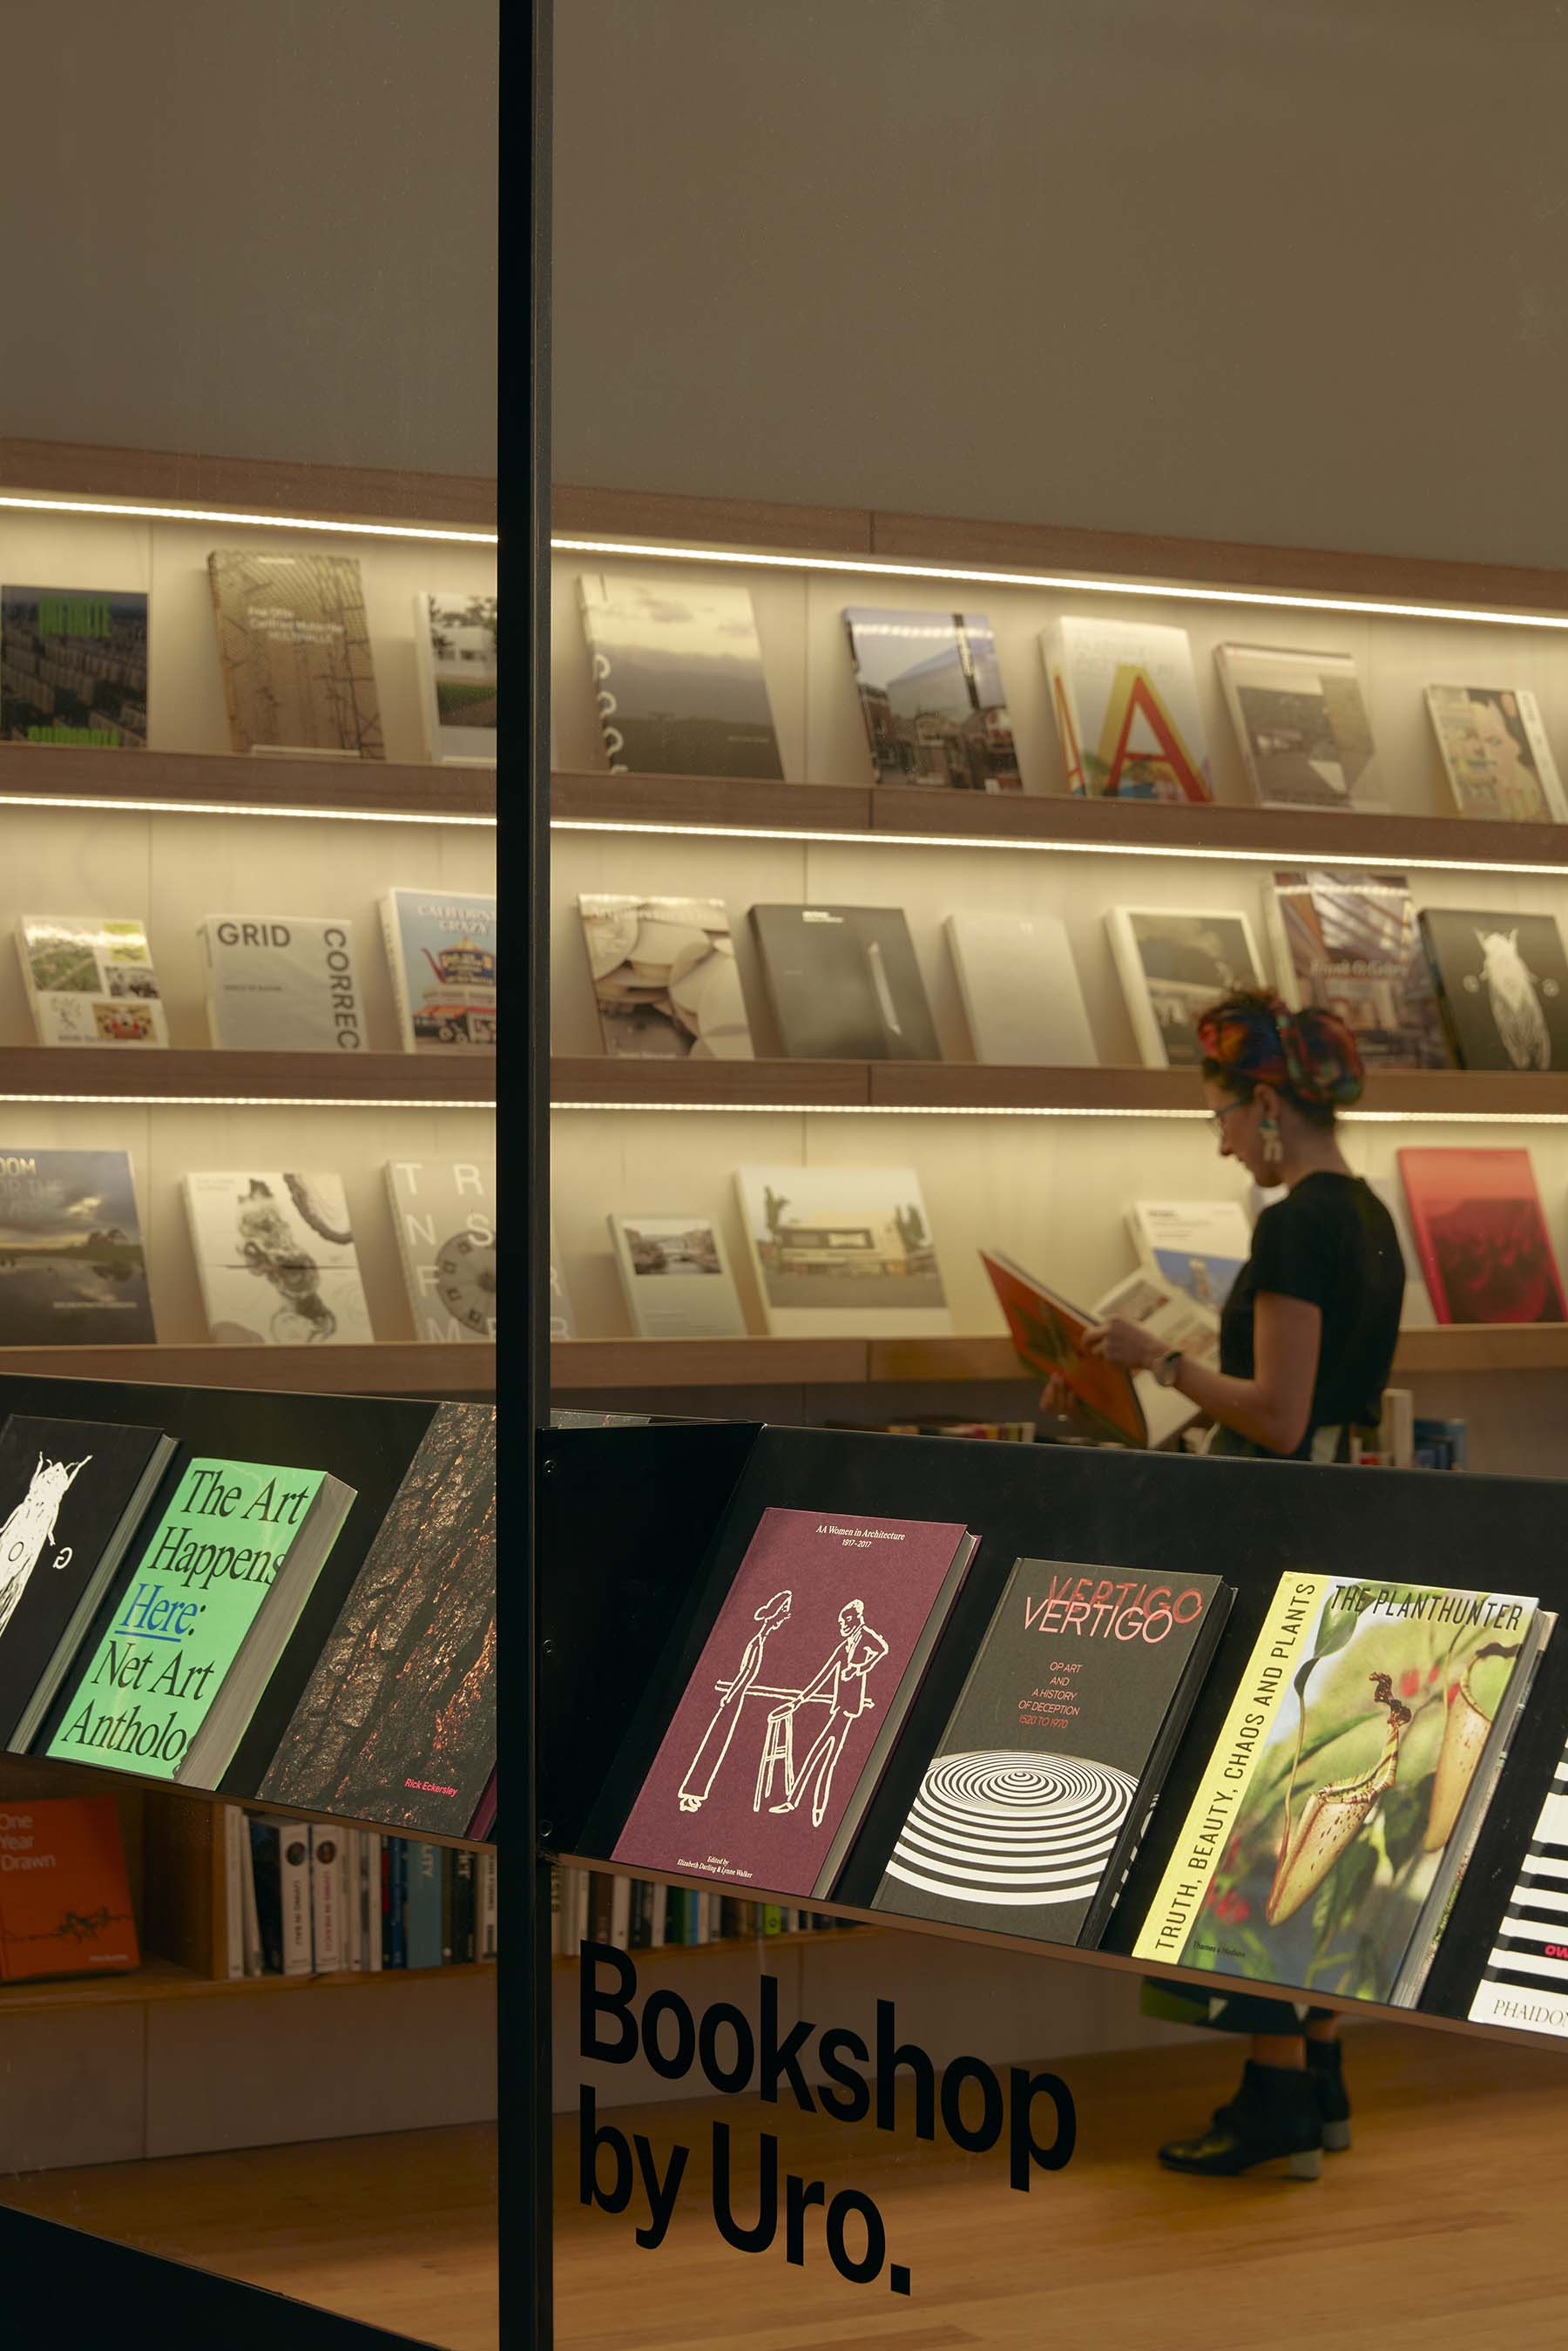 The window of Bookshop by Uro. Walls and shelves of books are visible, and a person is browsing the books available.